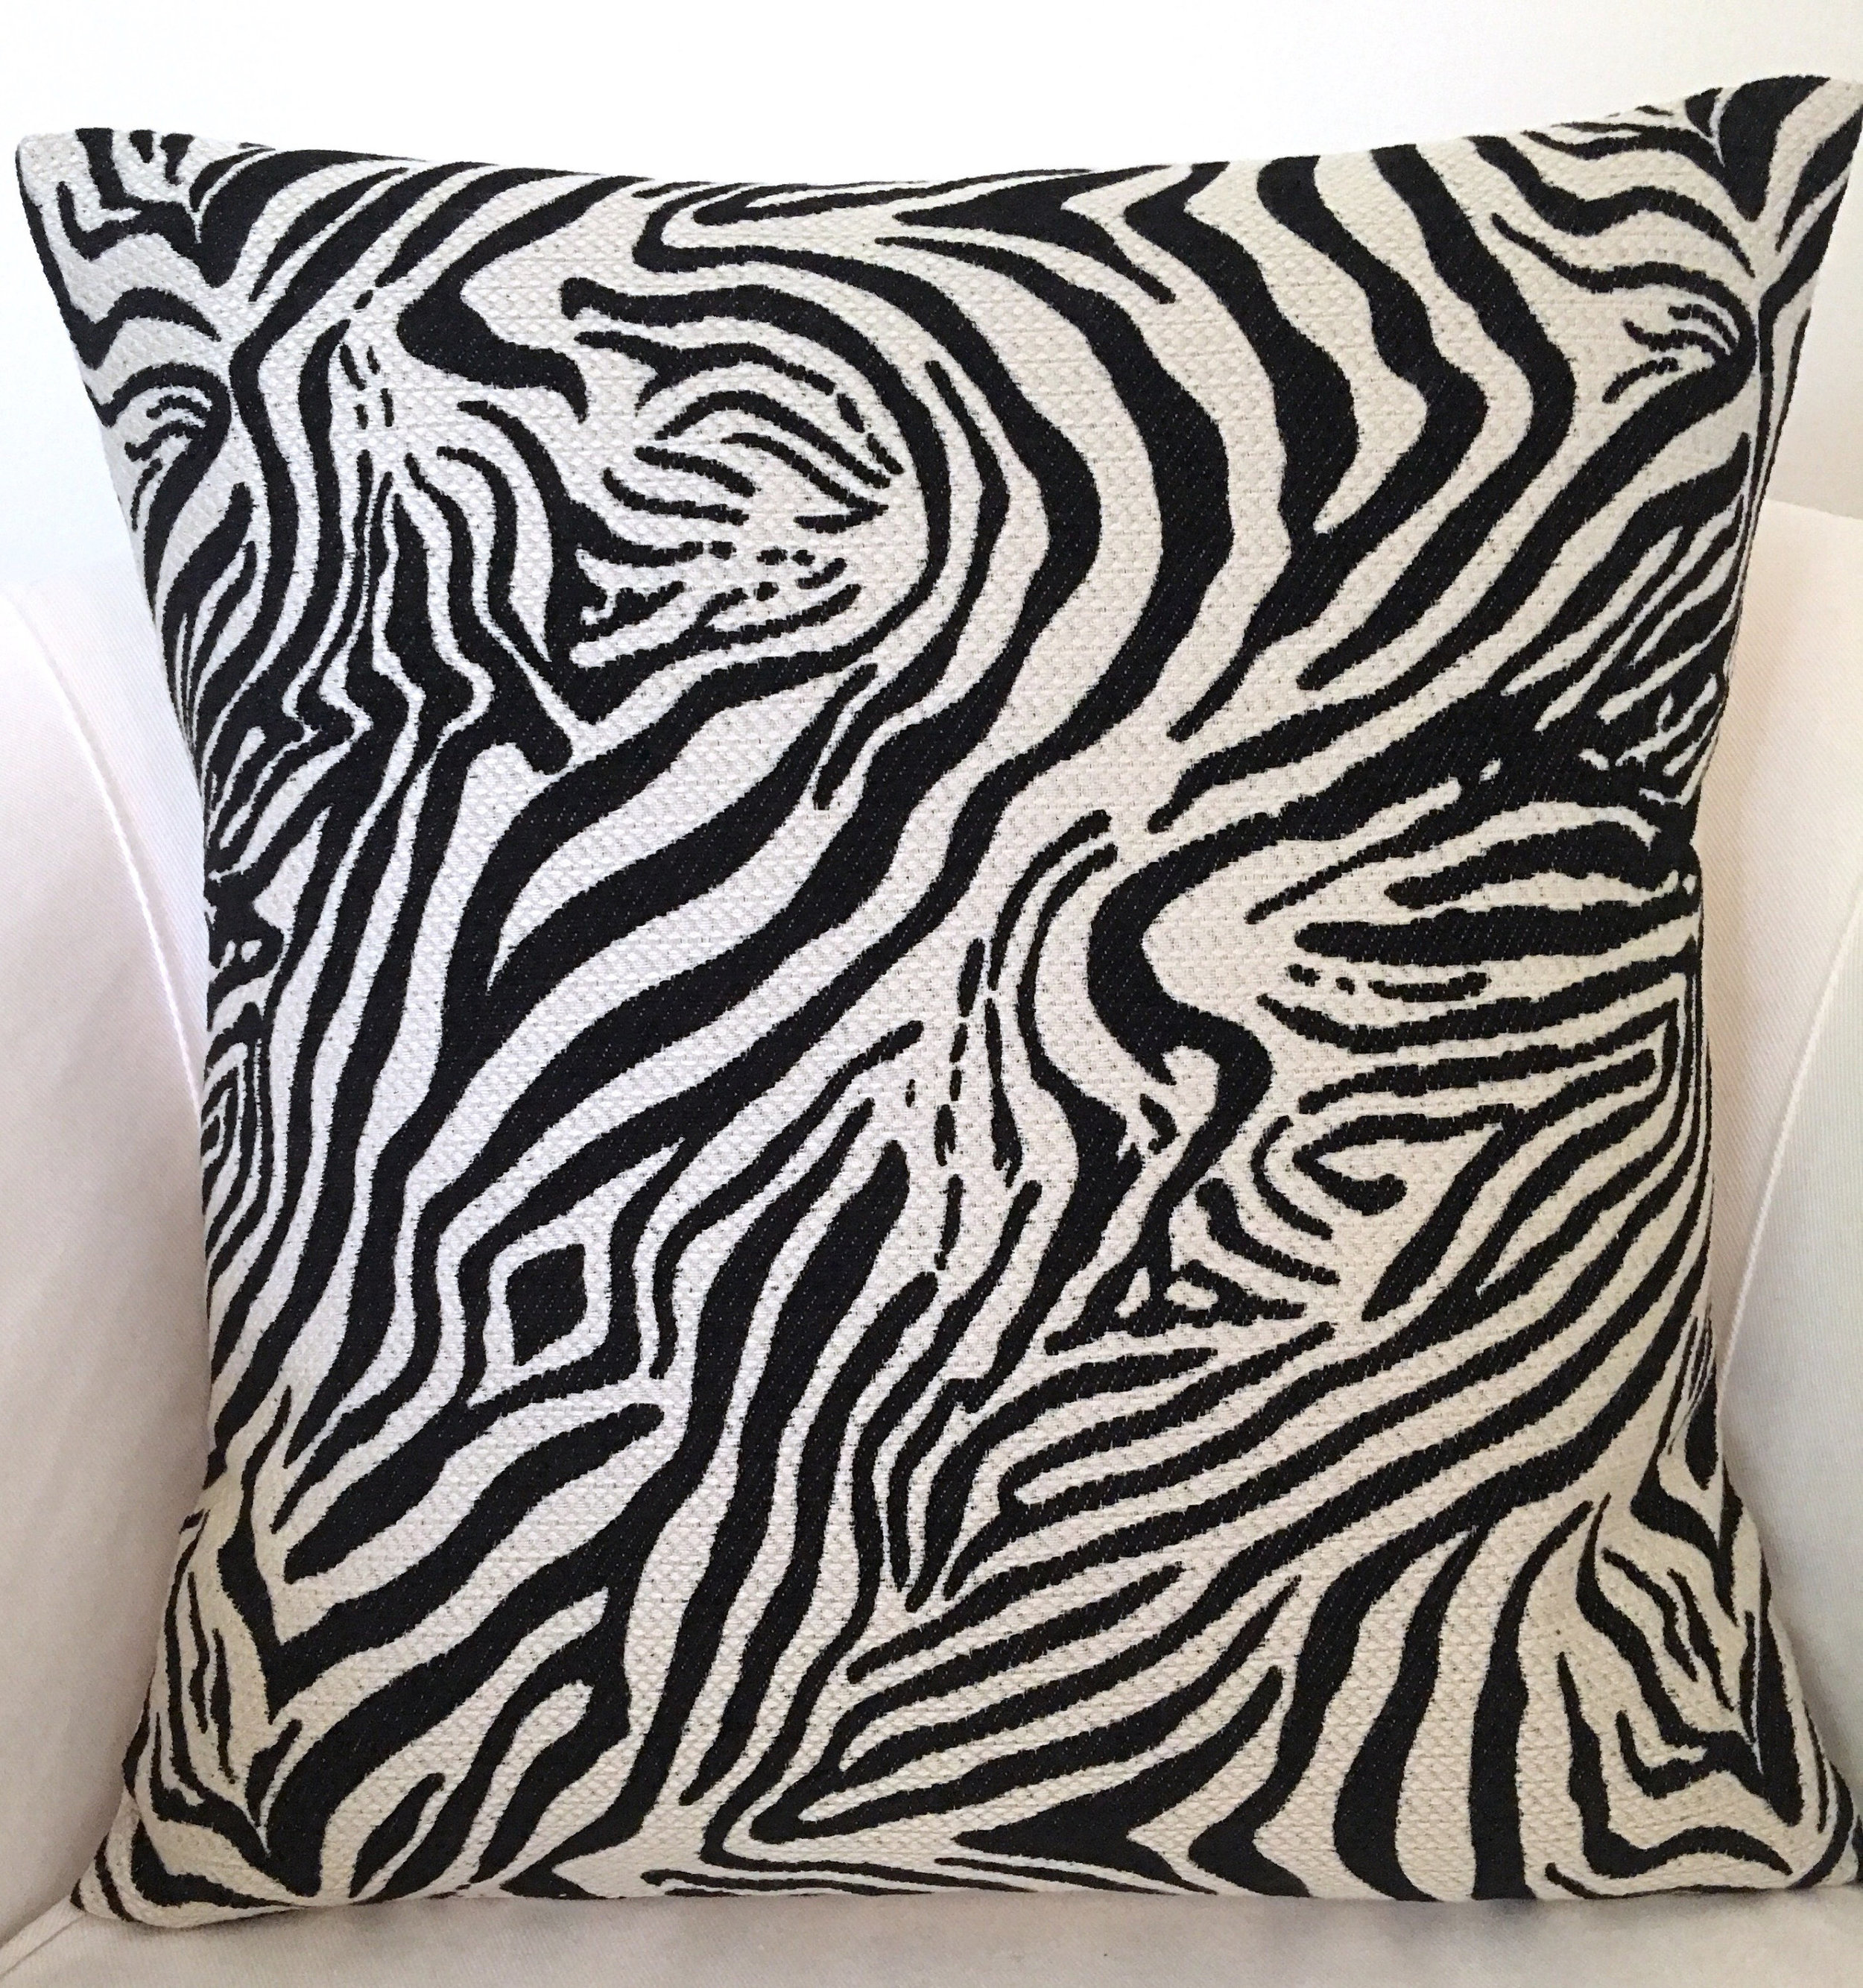 Etsy - Zebra Pillow Cover